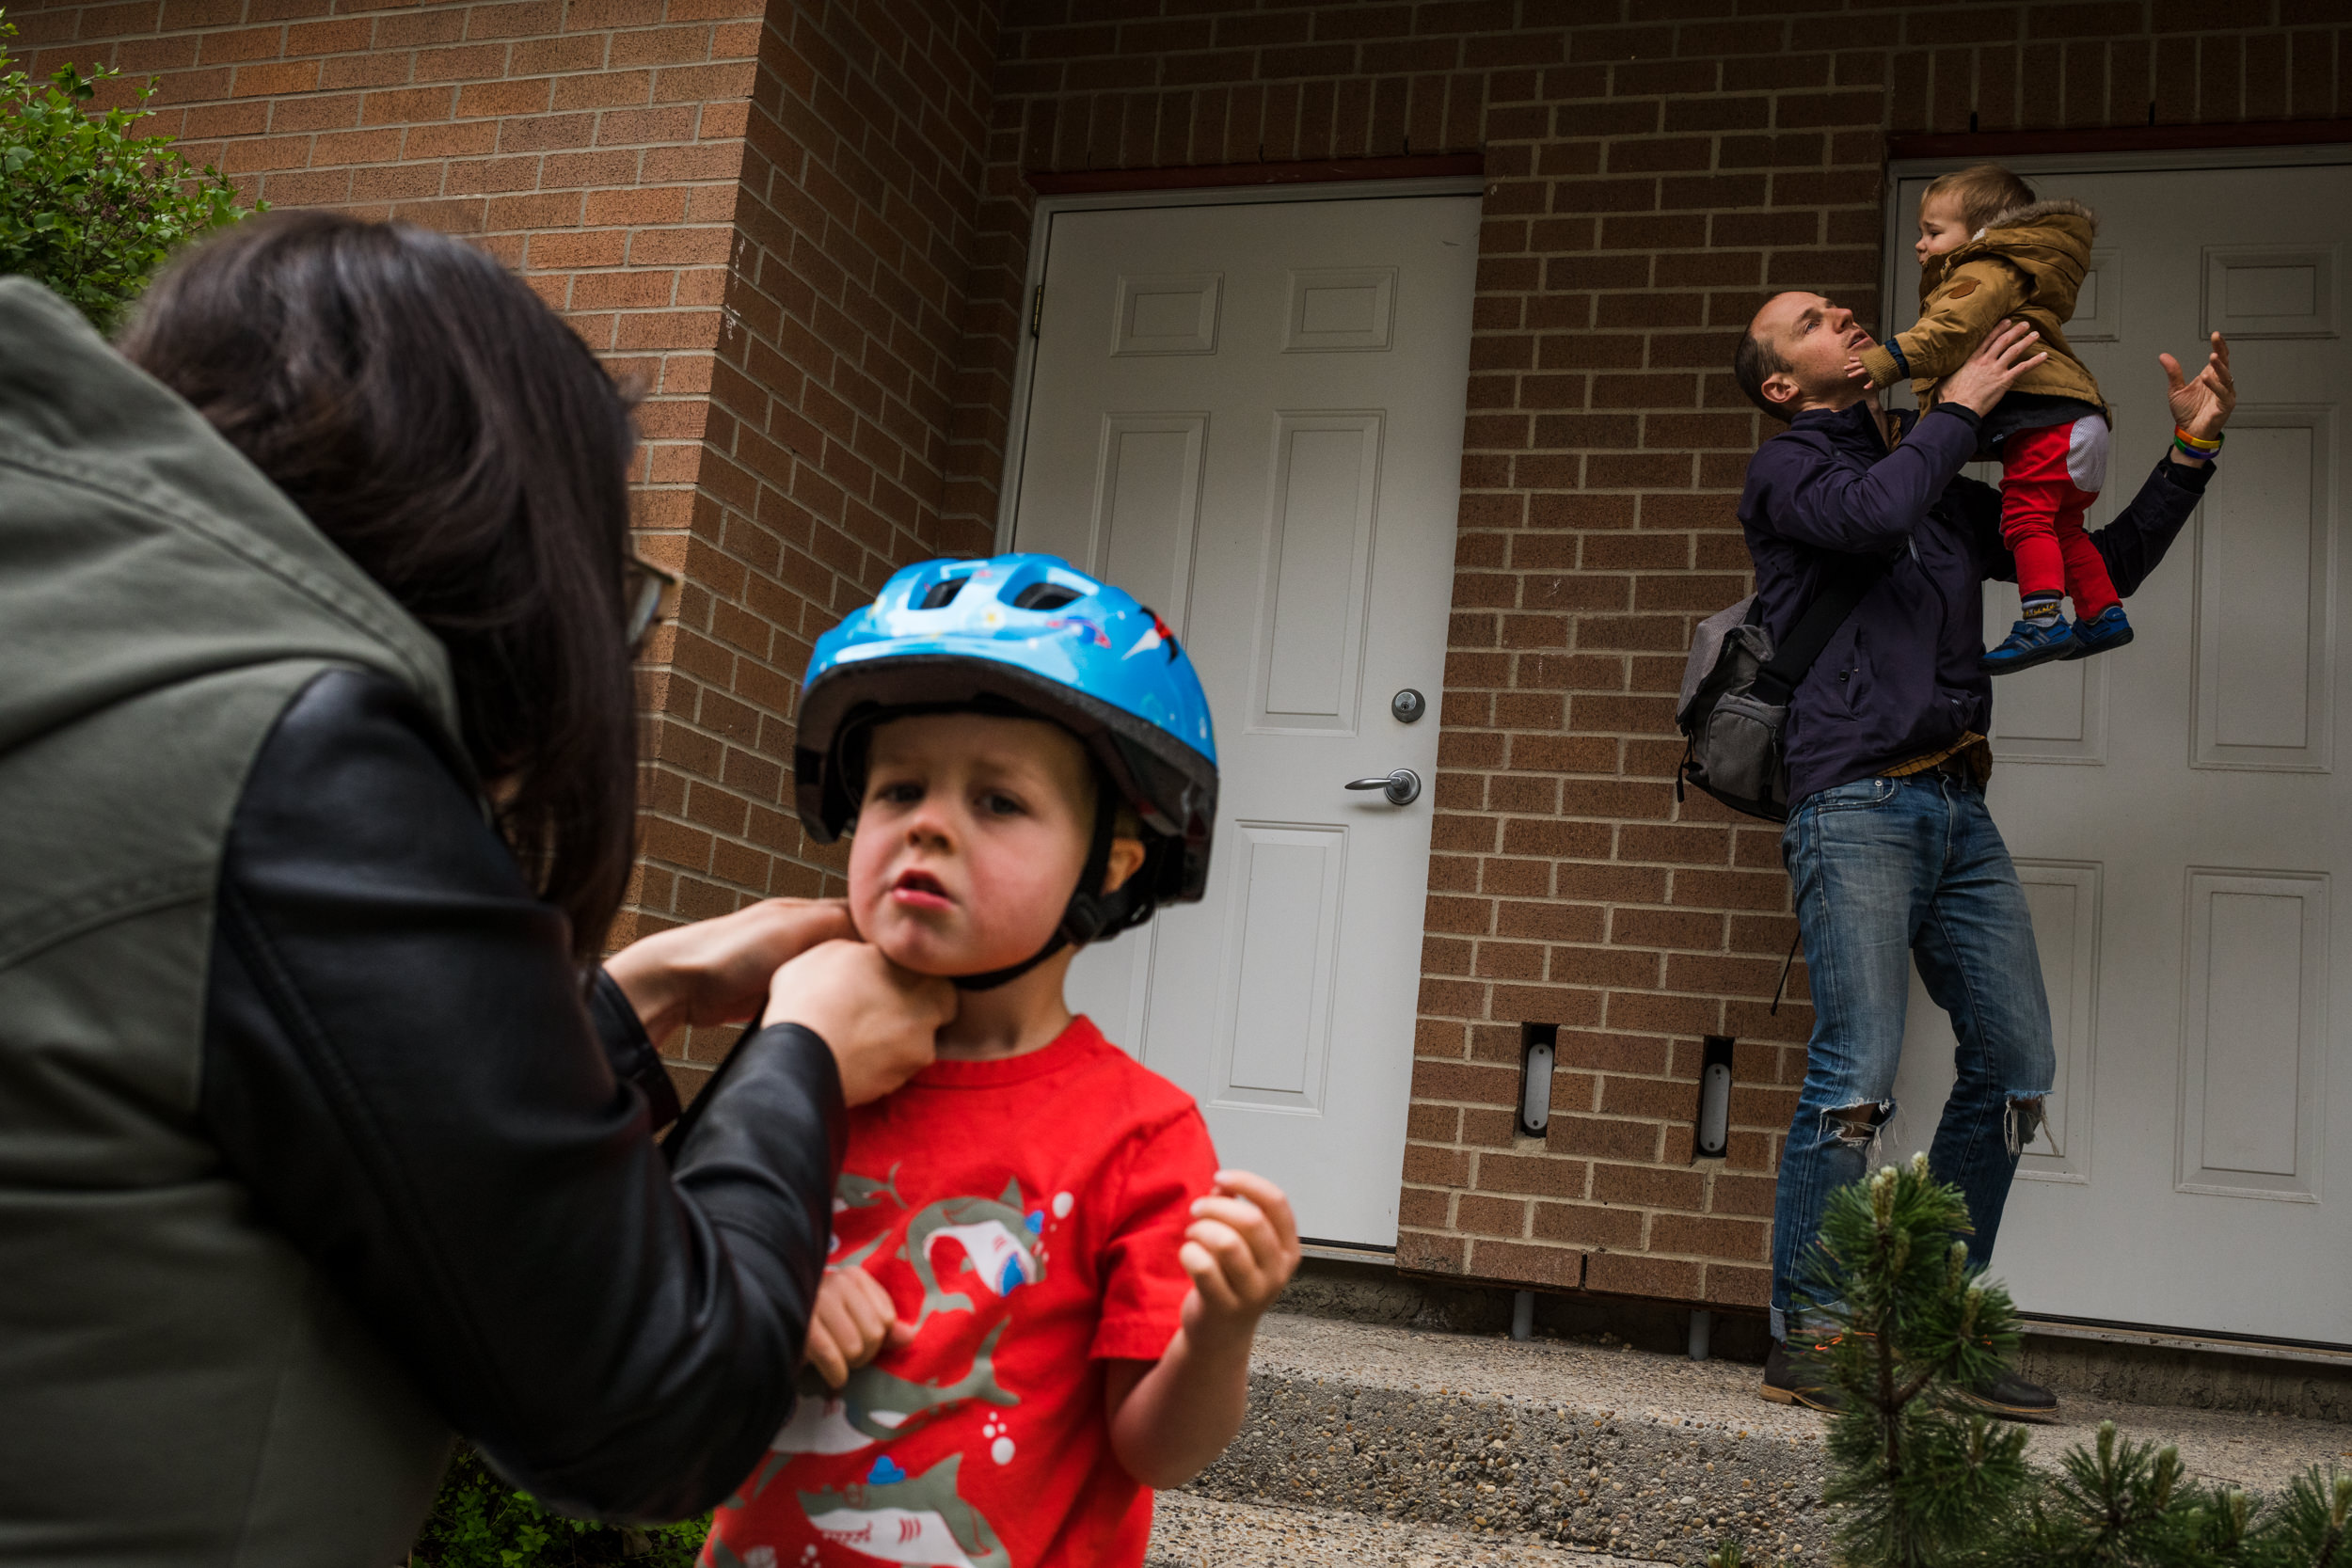 Parents help their two sons get ready for bike riding and a walk outside.